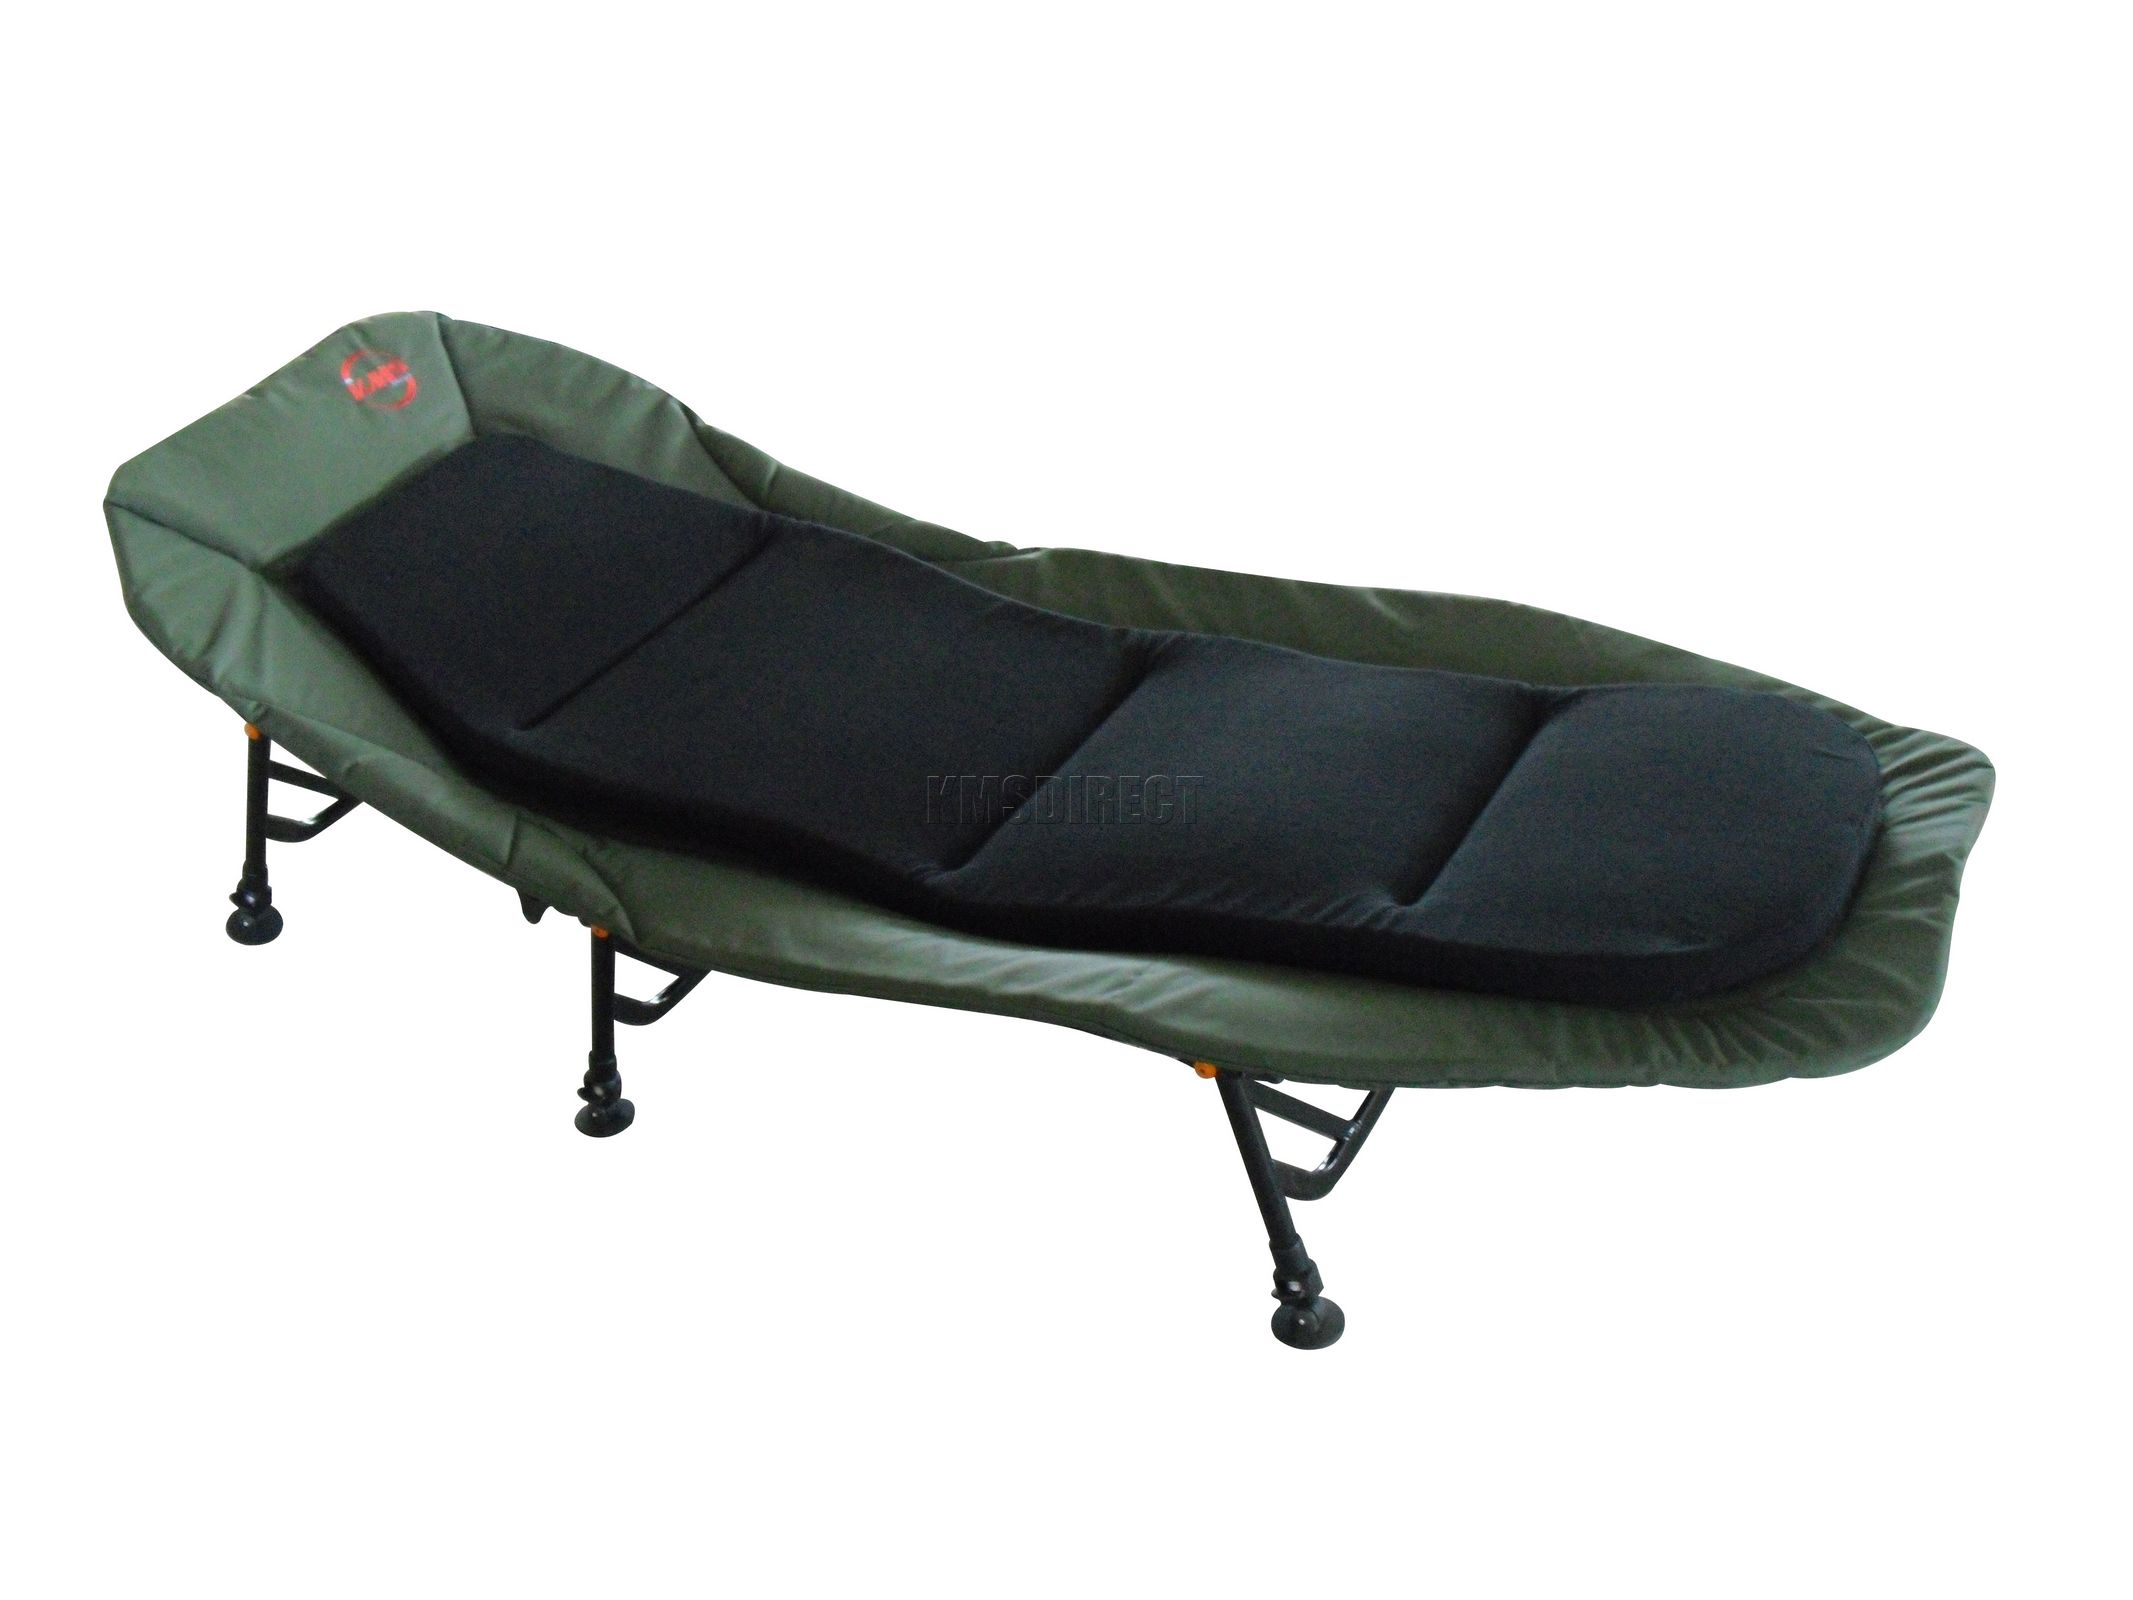 fishing chair uk safety first high bed bedchair camping 6 adjustable legs inner